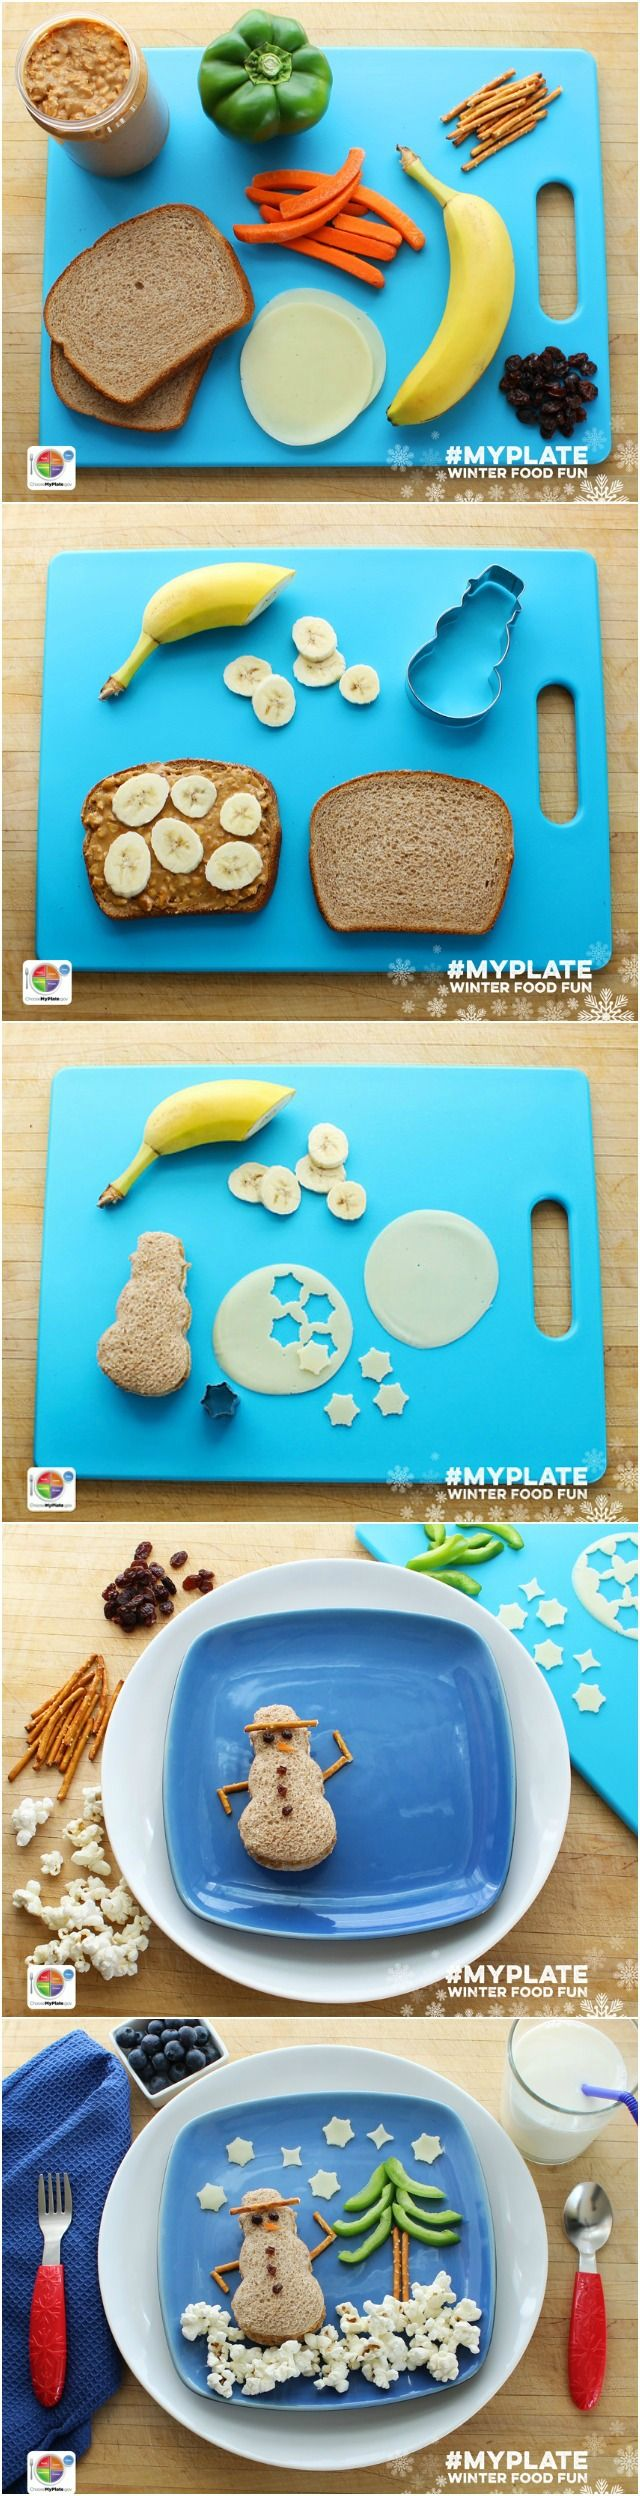 How to make an Edible #MyPlate Snowman @myplaterecipes